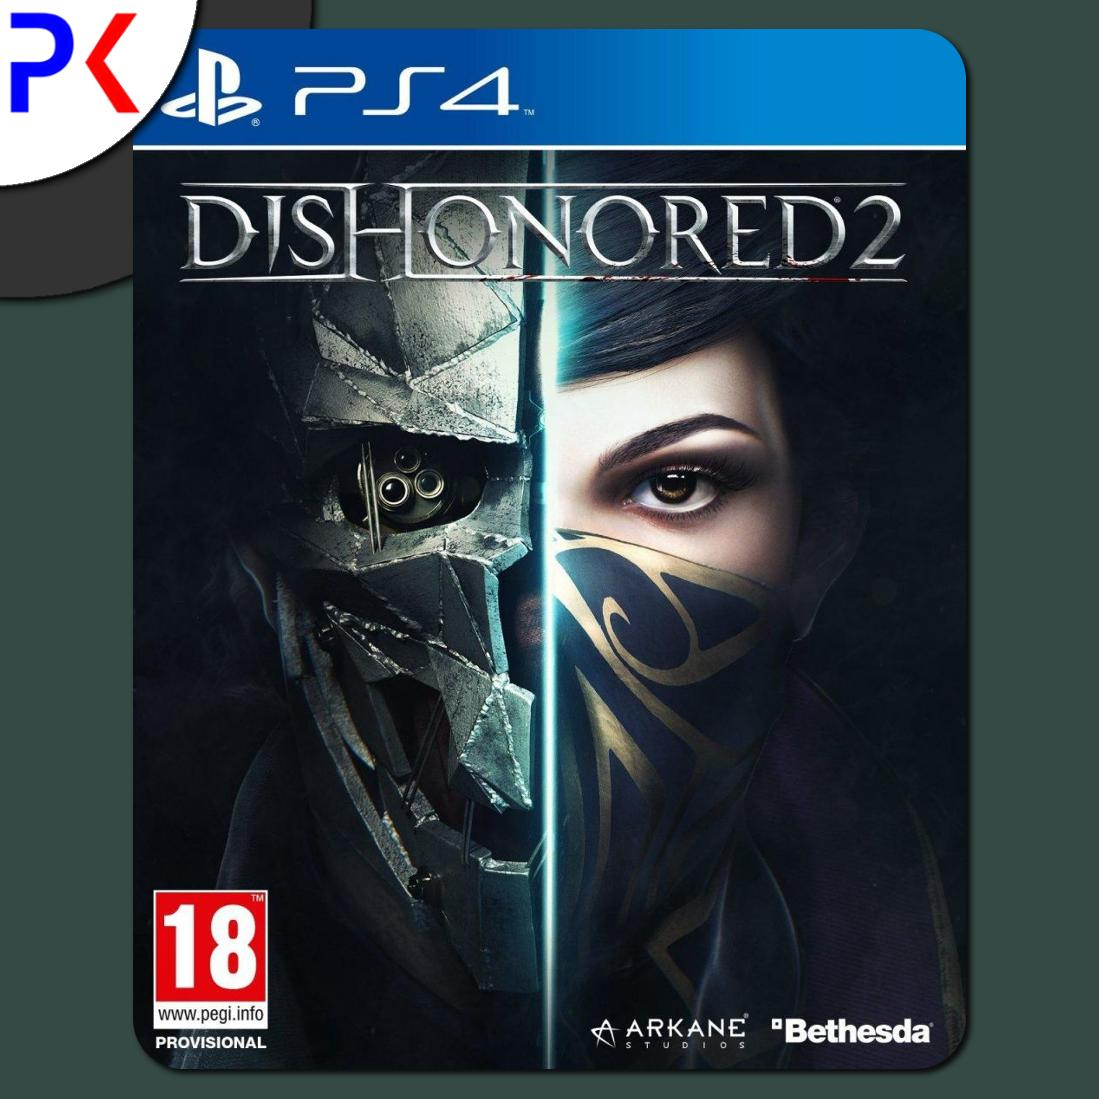 PS4 Dishonored 2 (R3)